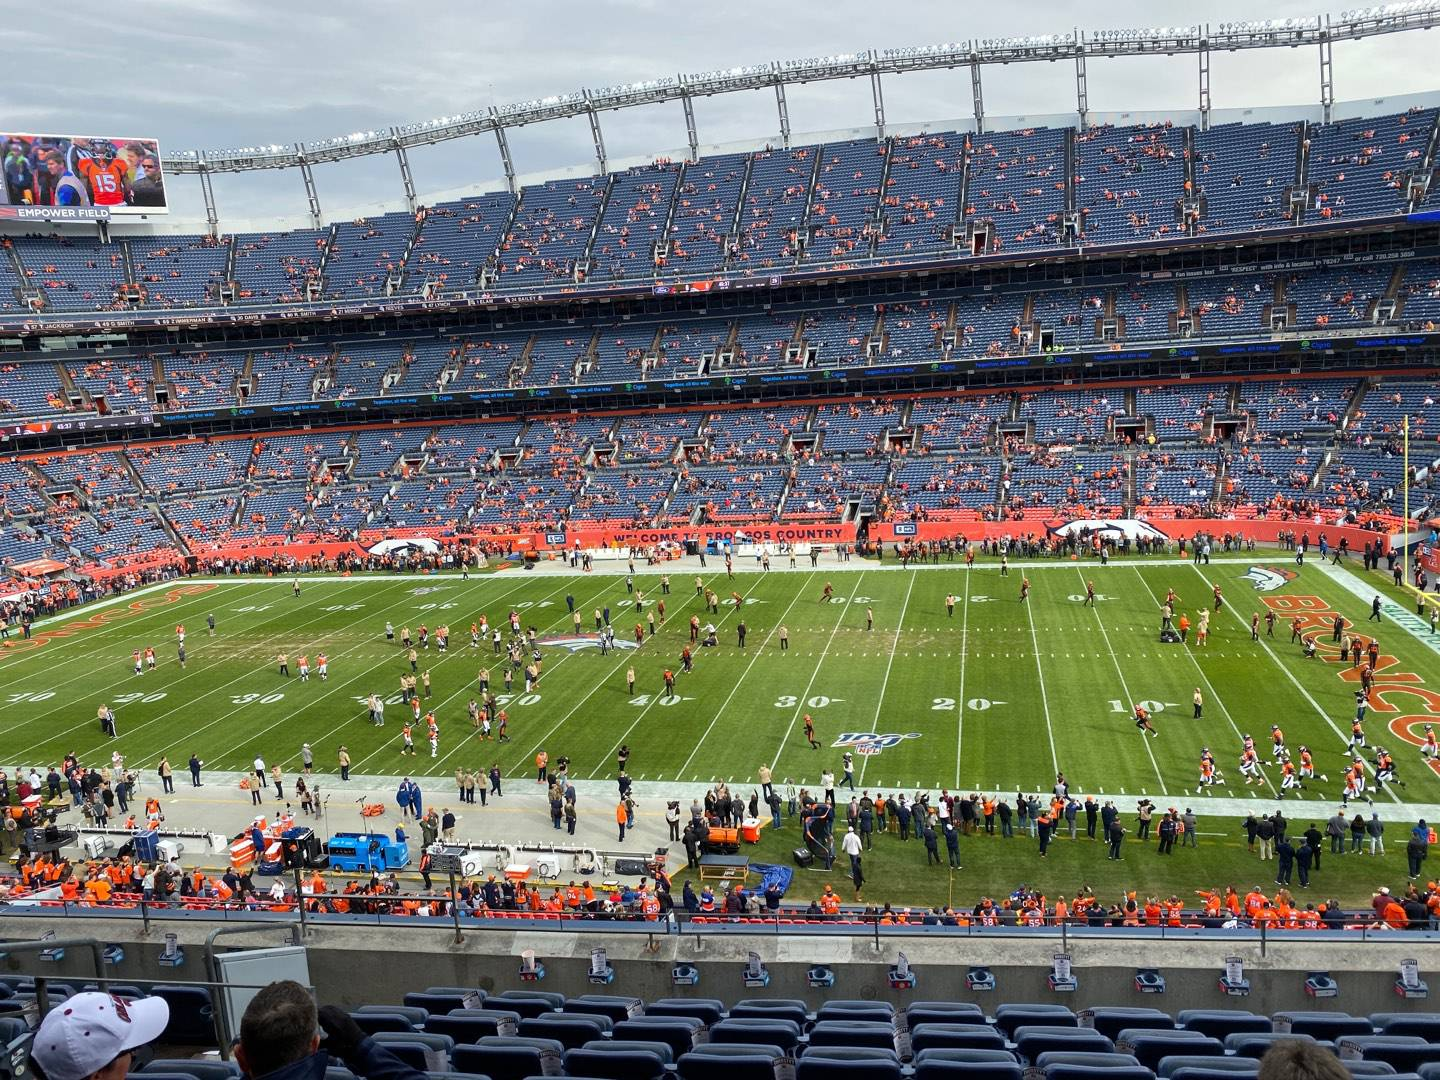 Empower Field at Mile High Stadium Section 306 Row 9 Seat 7